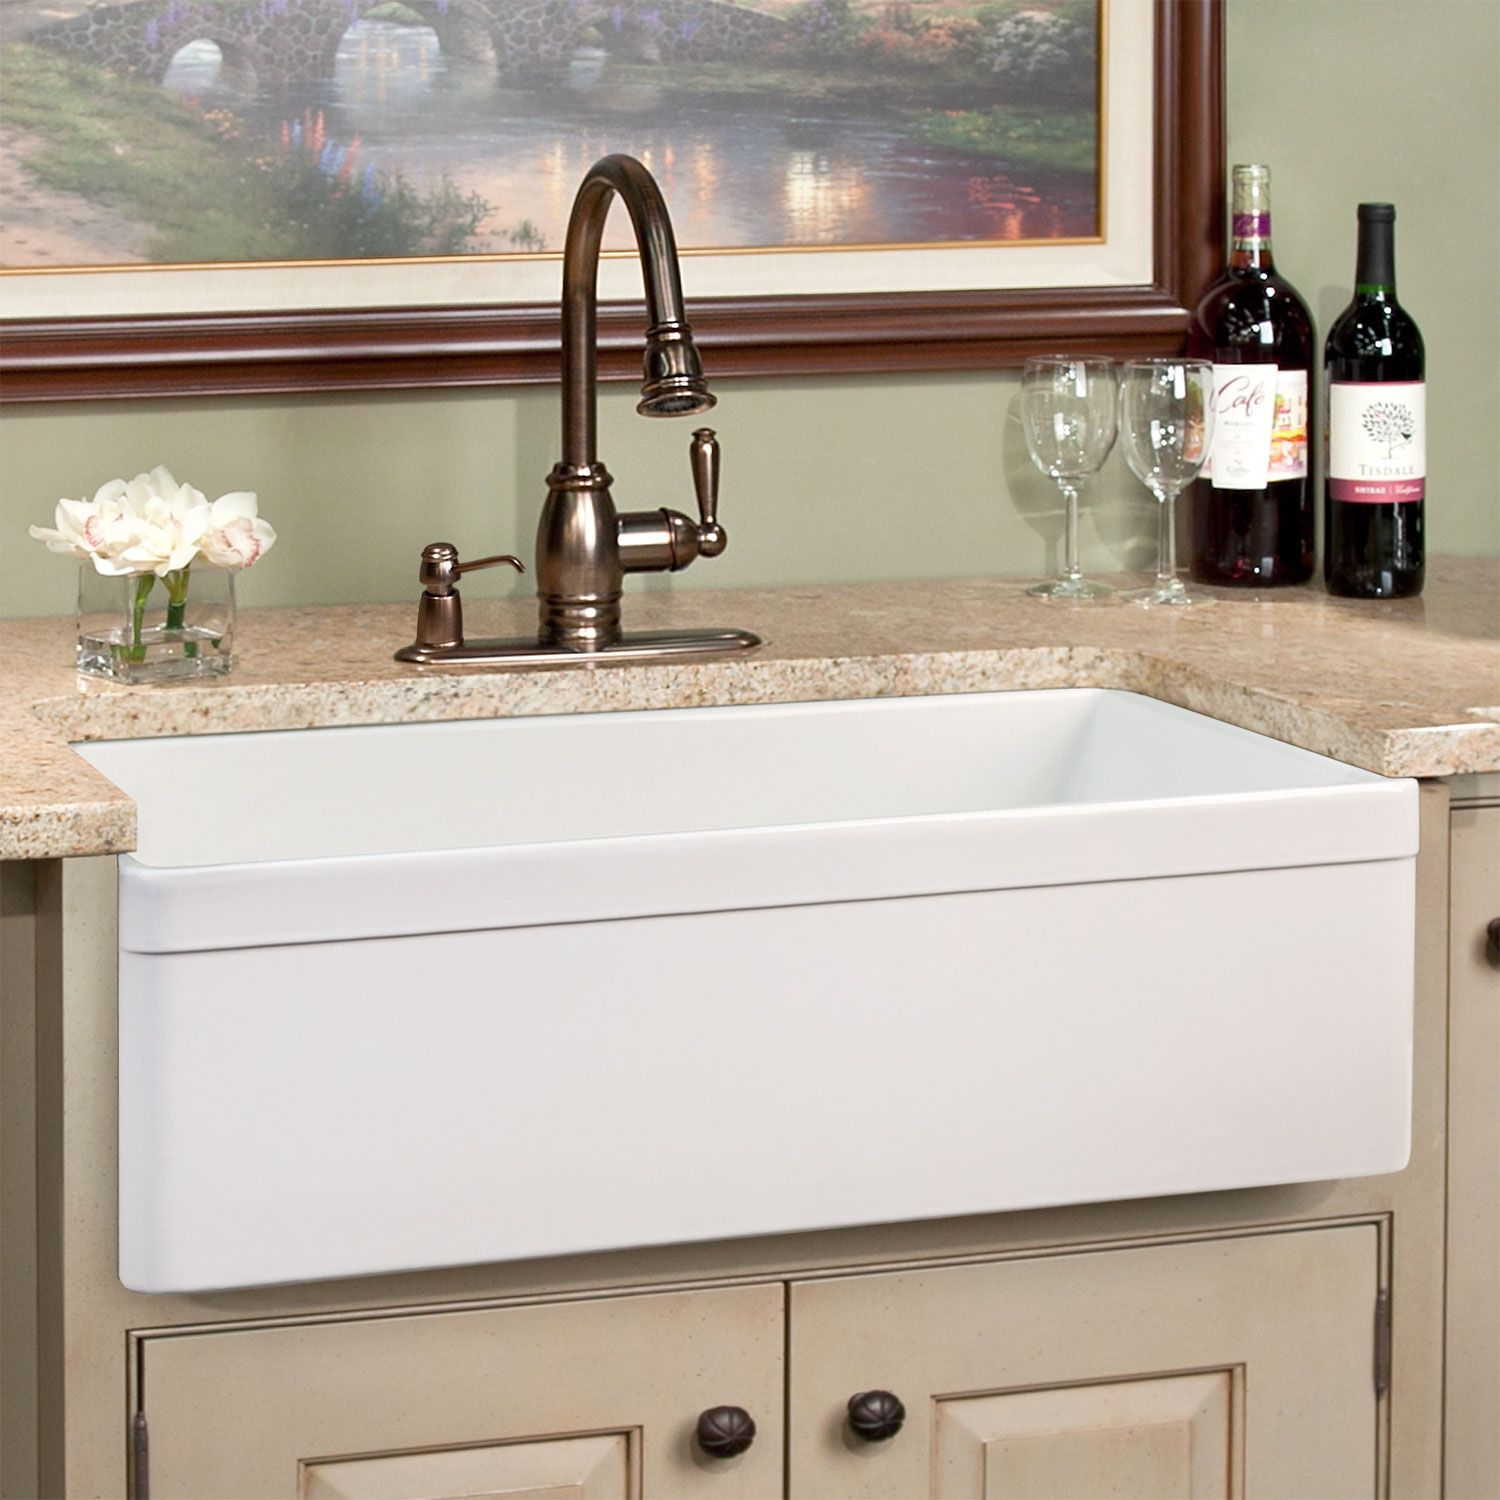 Discounted Farm Kitchen Sinks Kitchen Sink Cast Iron